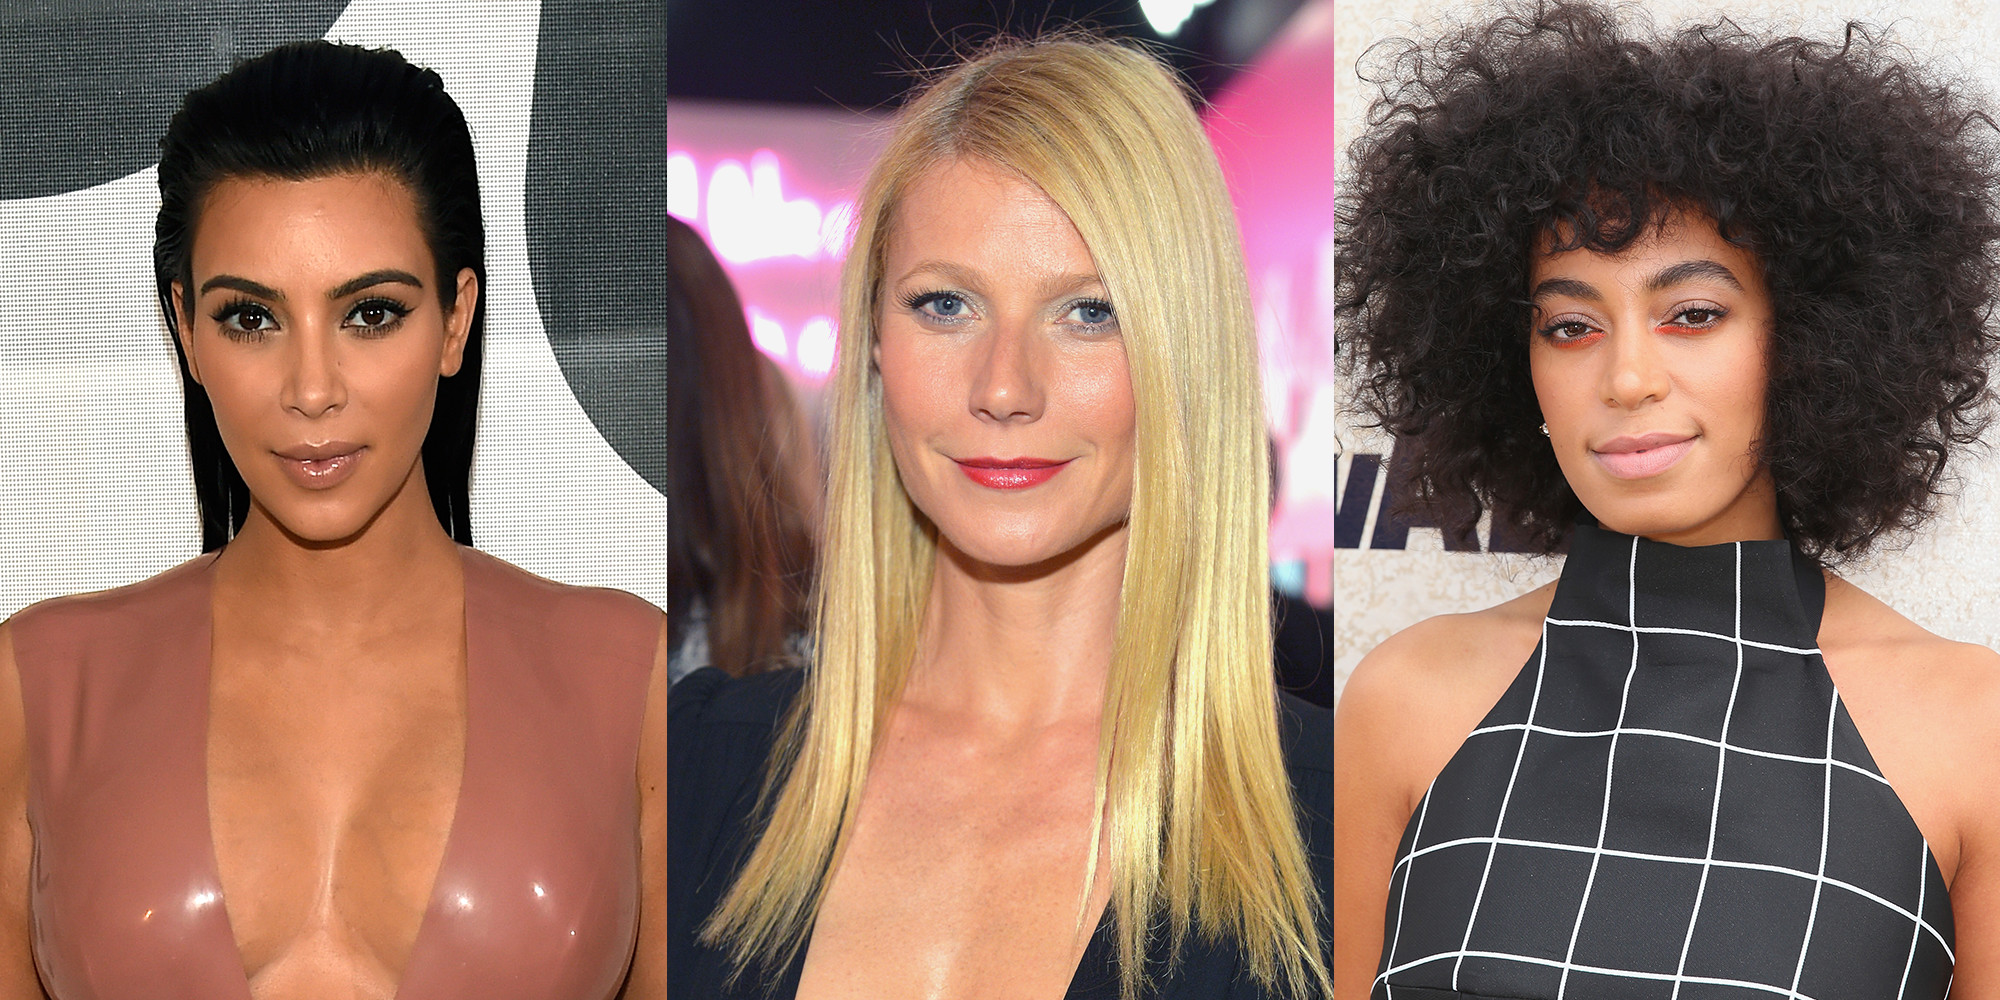 Womens Pubic Hair Styles: 16 Celebrity Pubic Hairstyles